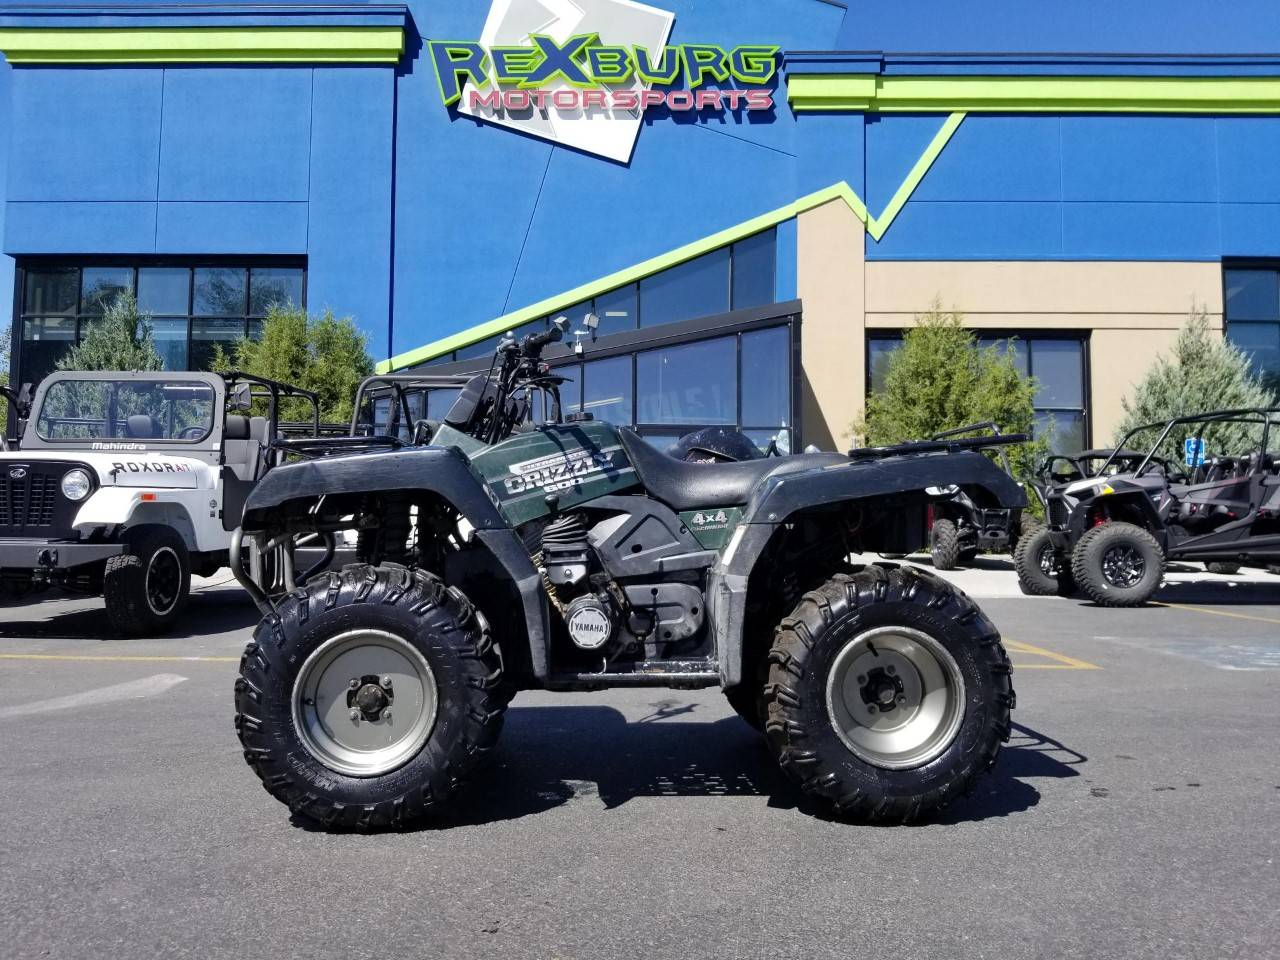 2001 Yamaha Grizzly 660 in Rexburg, Idaho - Photo 1